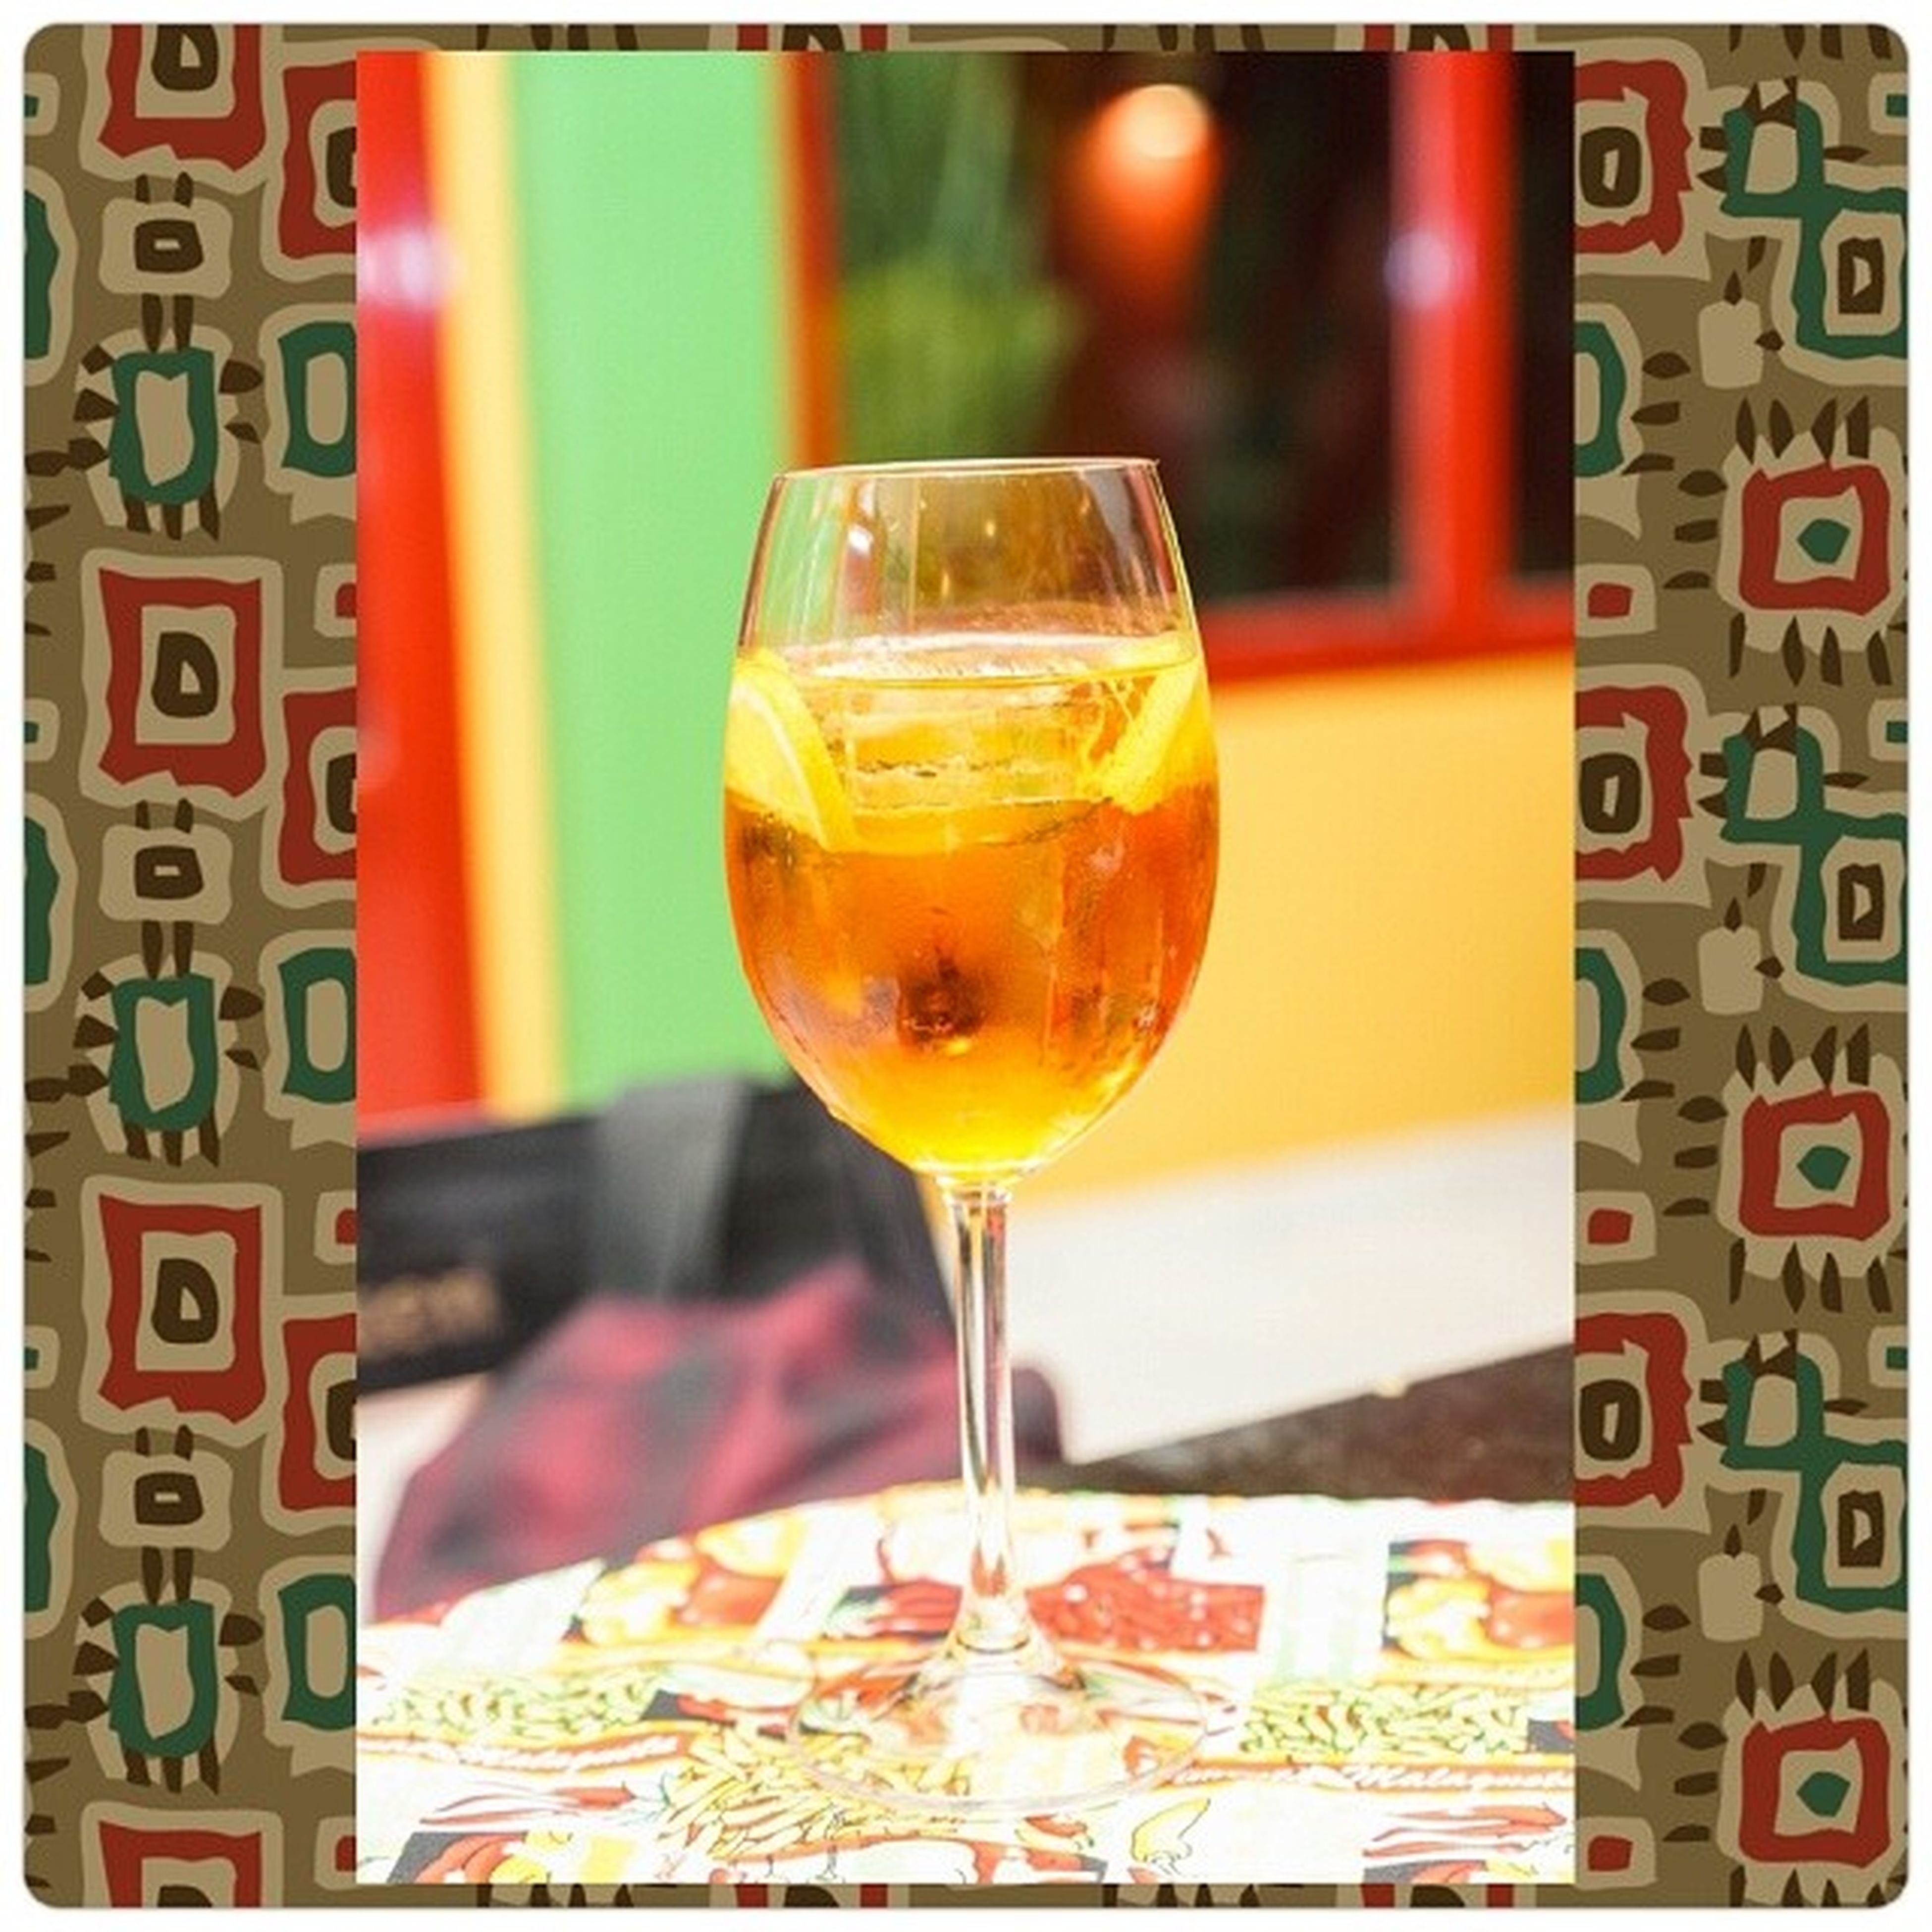 food and drink, drink, refreshment, indoors, alcohol, drinking glass, glass - material, freshness, close-up, transparent, table, still life, restaurant, focus on foreground, beer - alcohol, wineglass, text, wine, yellow, glass